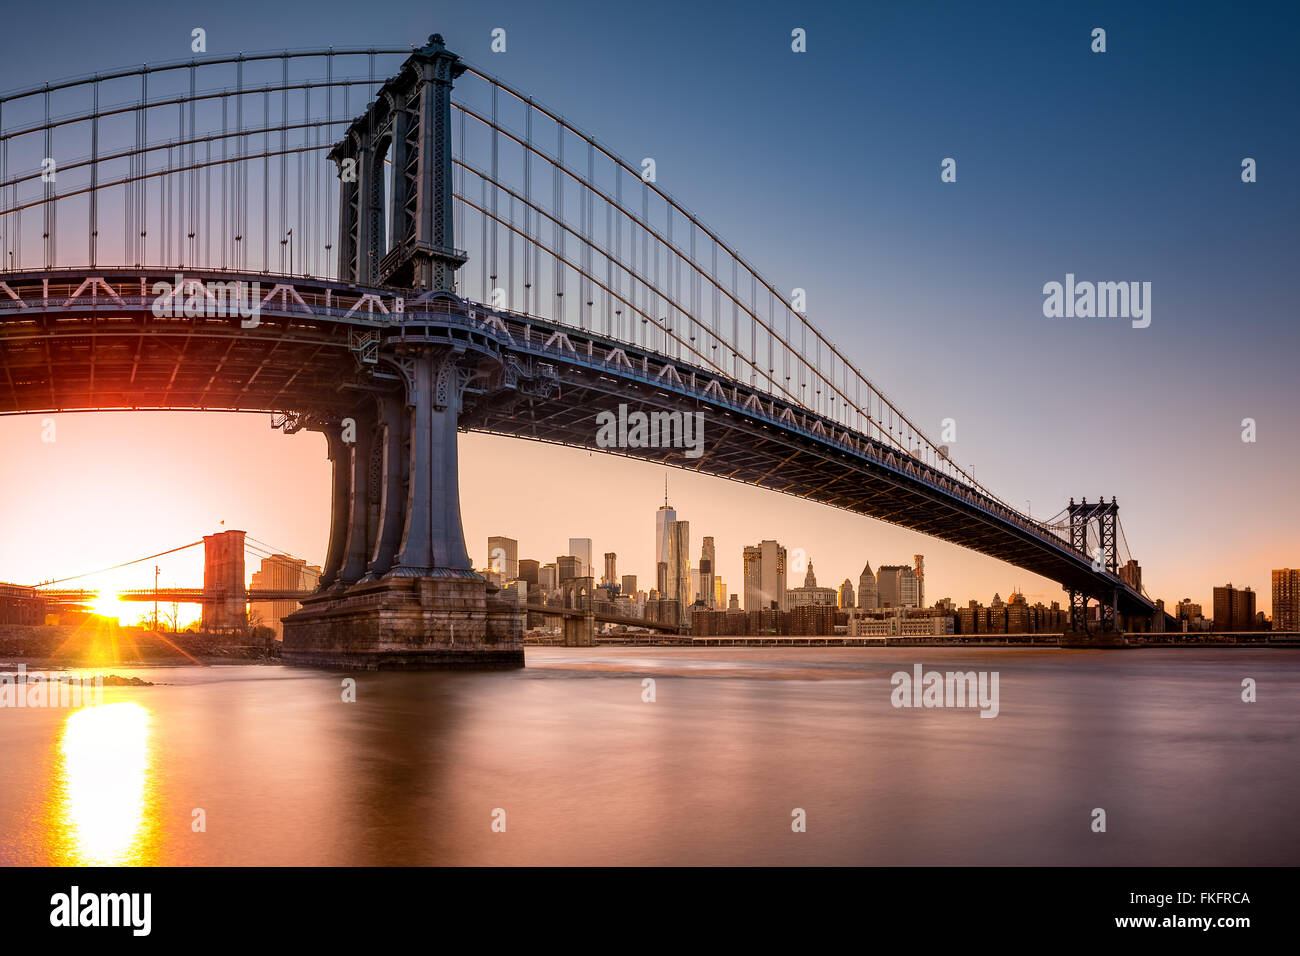 Manhattan Bridge New York Skyline bei Sonnenuntergang einrahmen. Stockbild